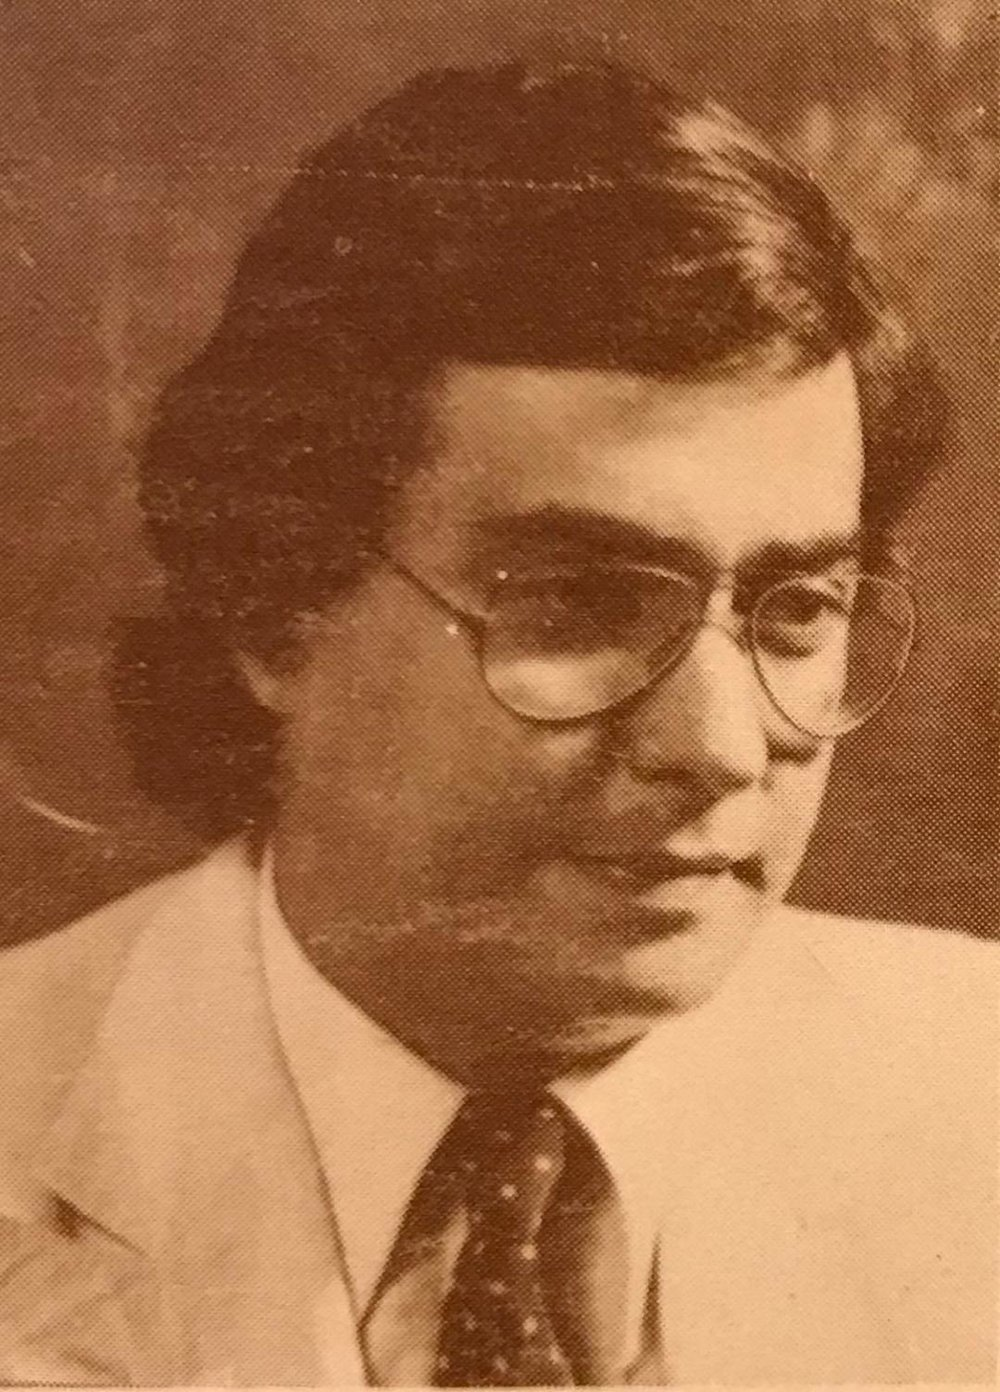 Photo of Enriquillo Sánchez originally appeared in his award-winning book  Pájaro dentro de la lluvia  published in 1985 by Editora Taller.